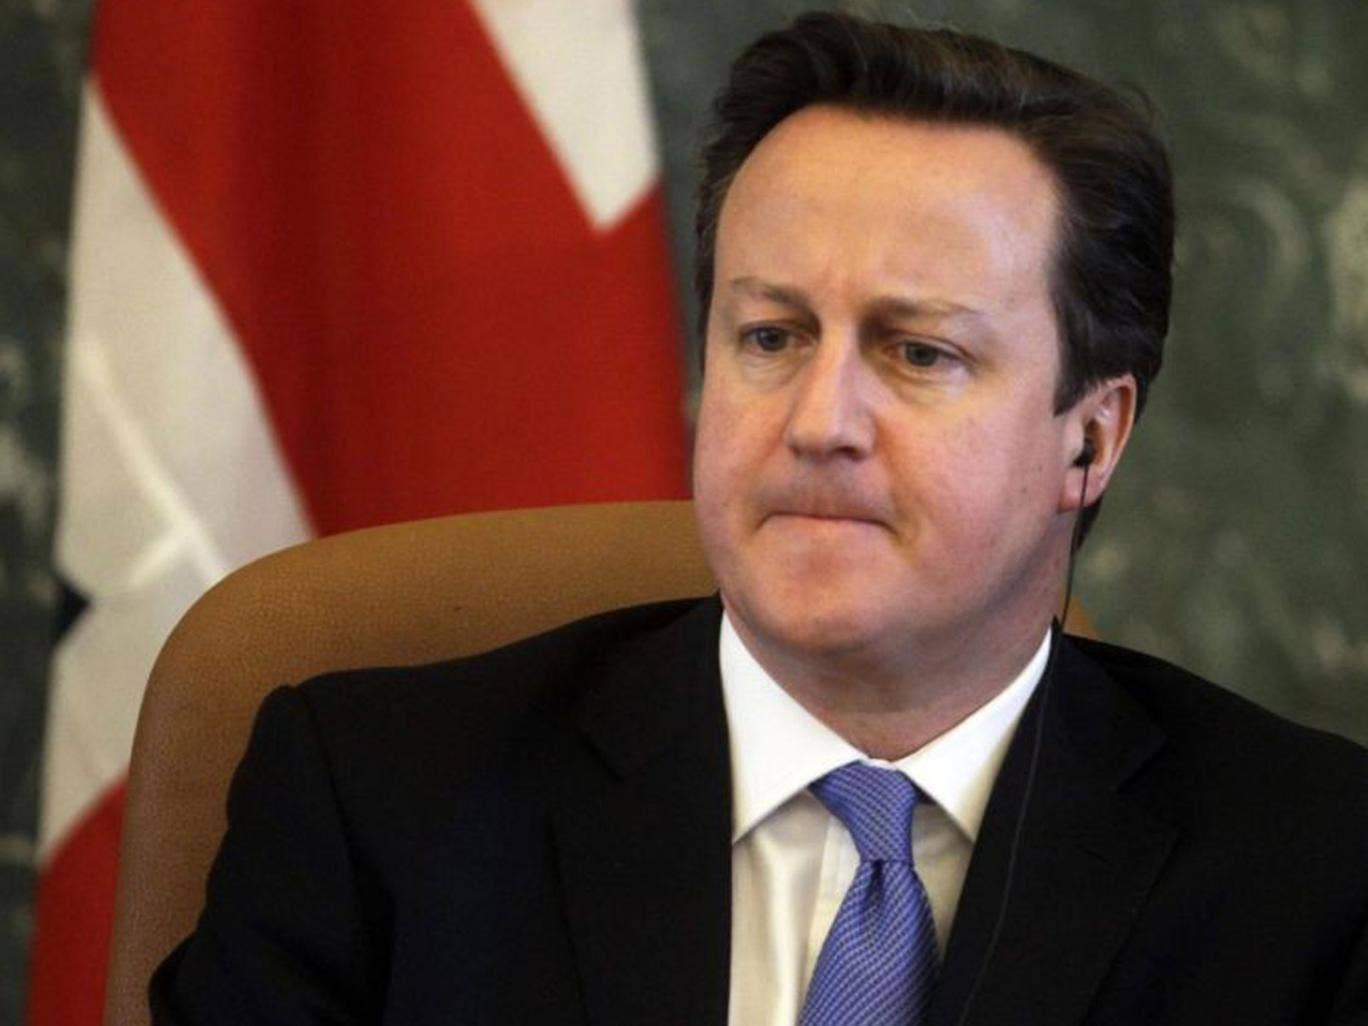 Boris Johnson today stepped up the pressure on David Cameron (pictured) over Europe